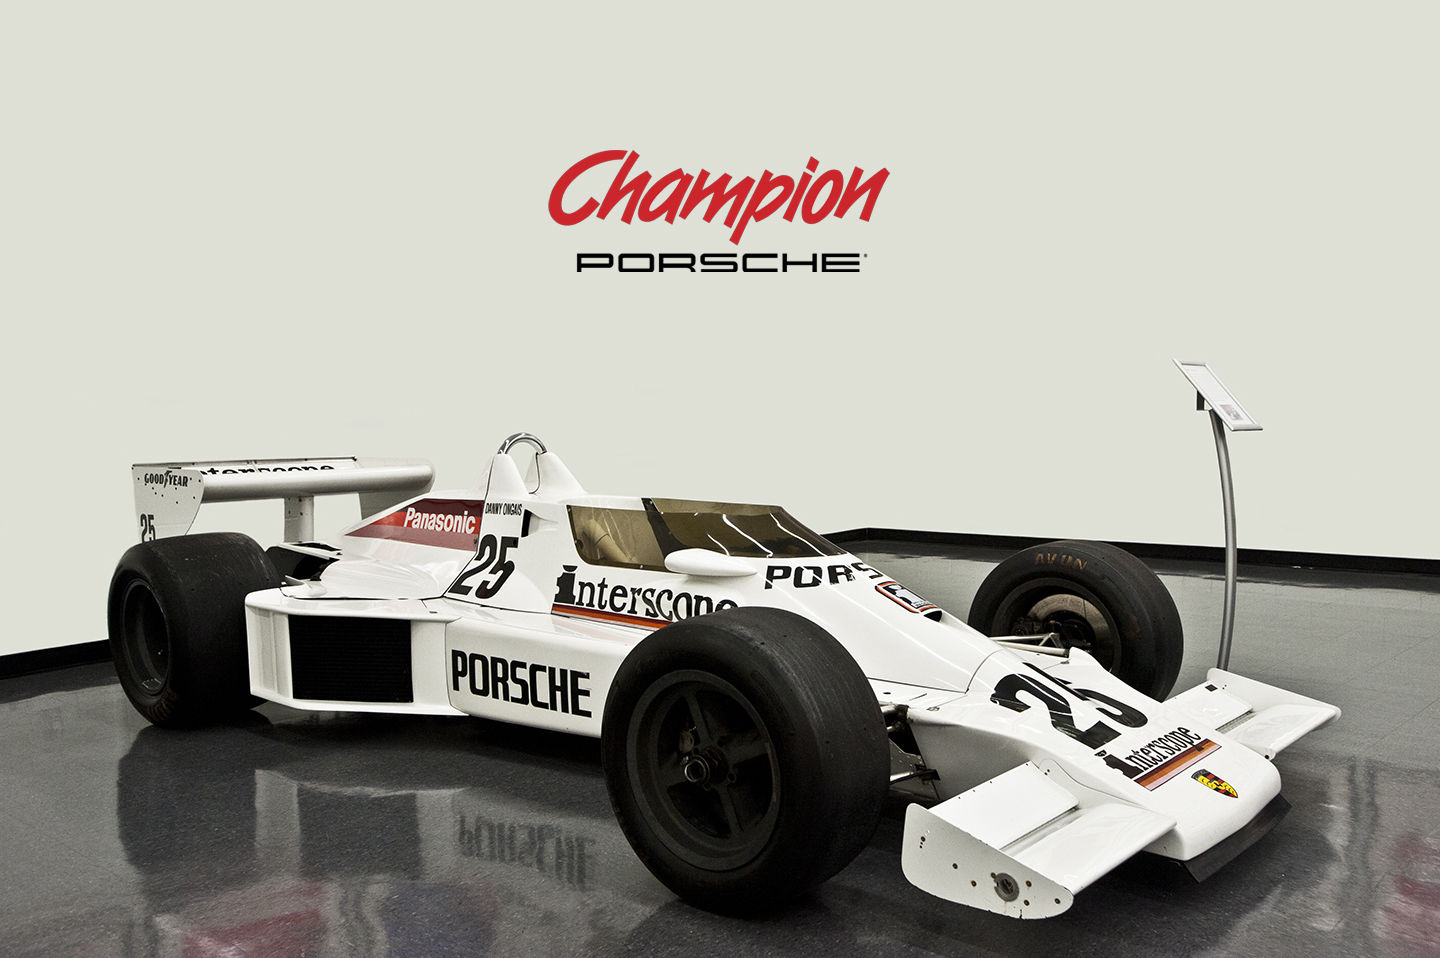 Interscope Porsche IndyCar For Sale